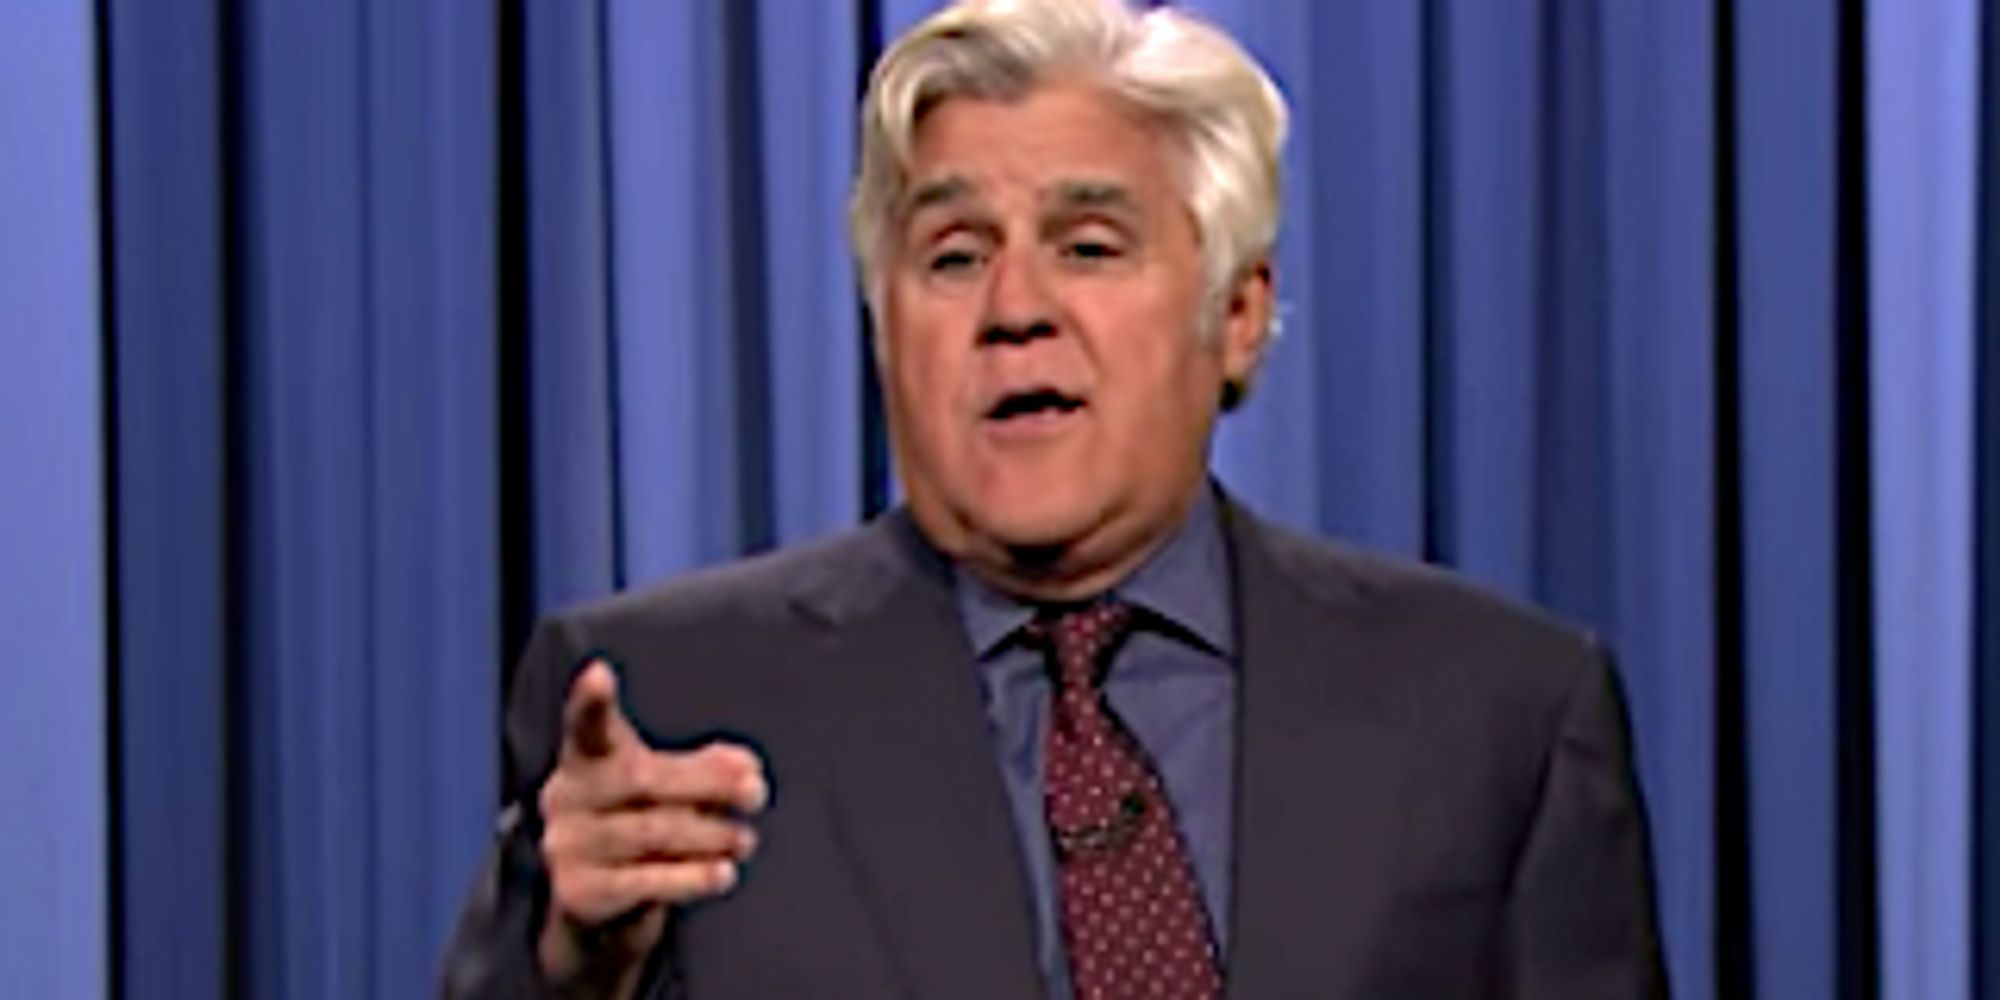 jay leno fires off hilarious election zingers on the tonight show jay leno fires off hilarious election zingers on the tonight show the huffington post